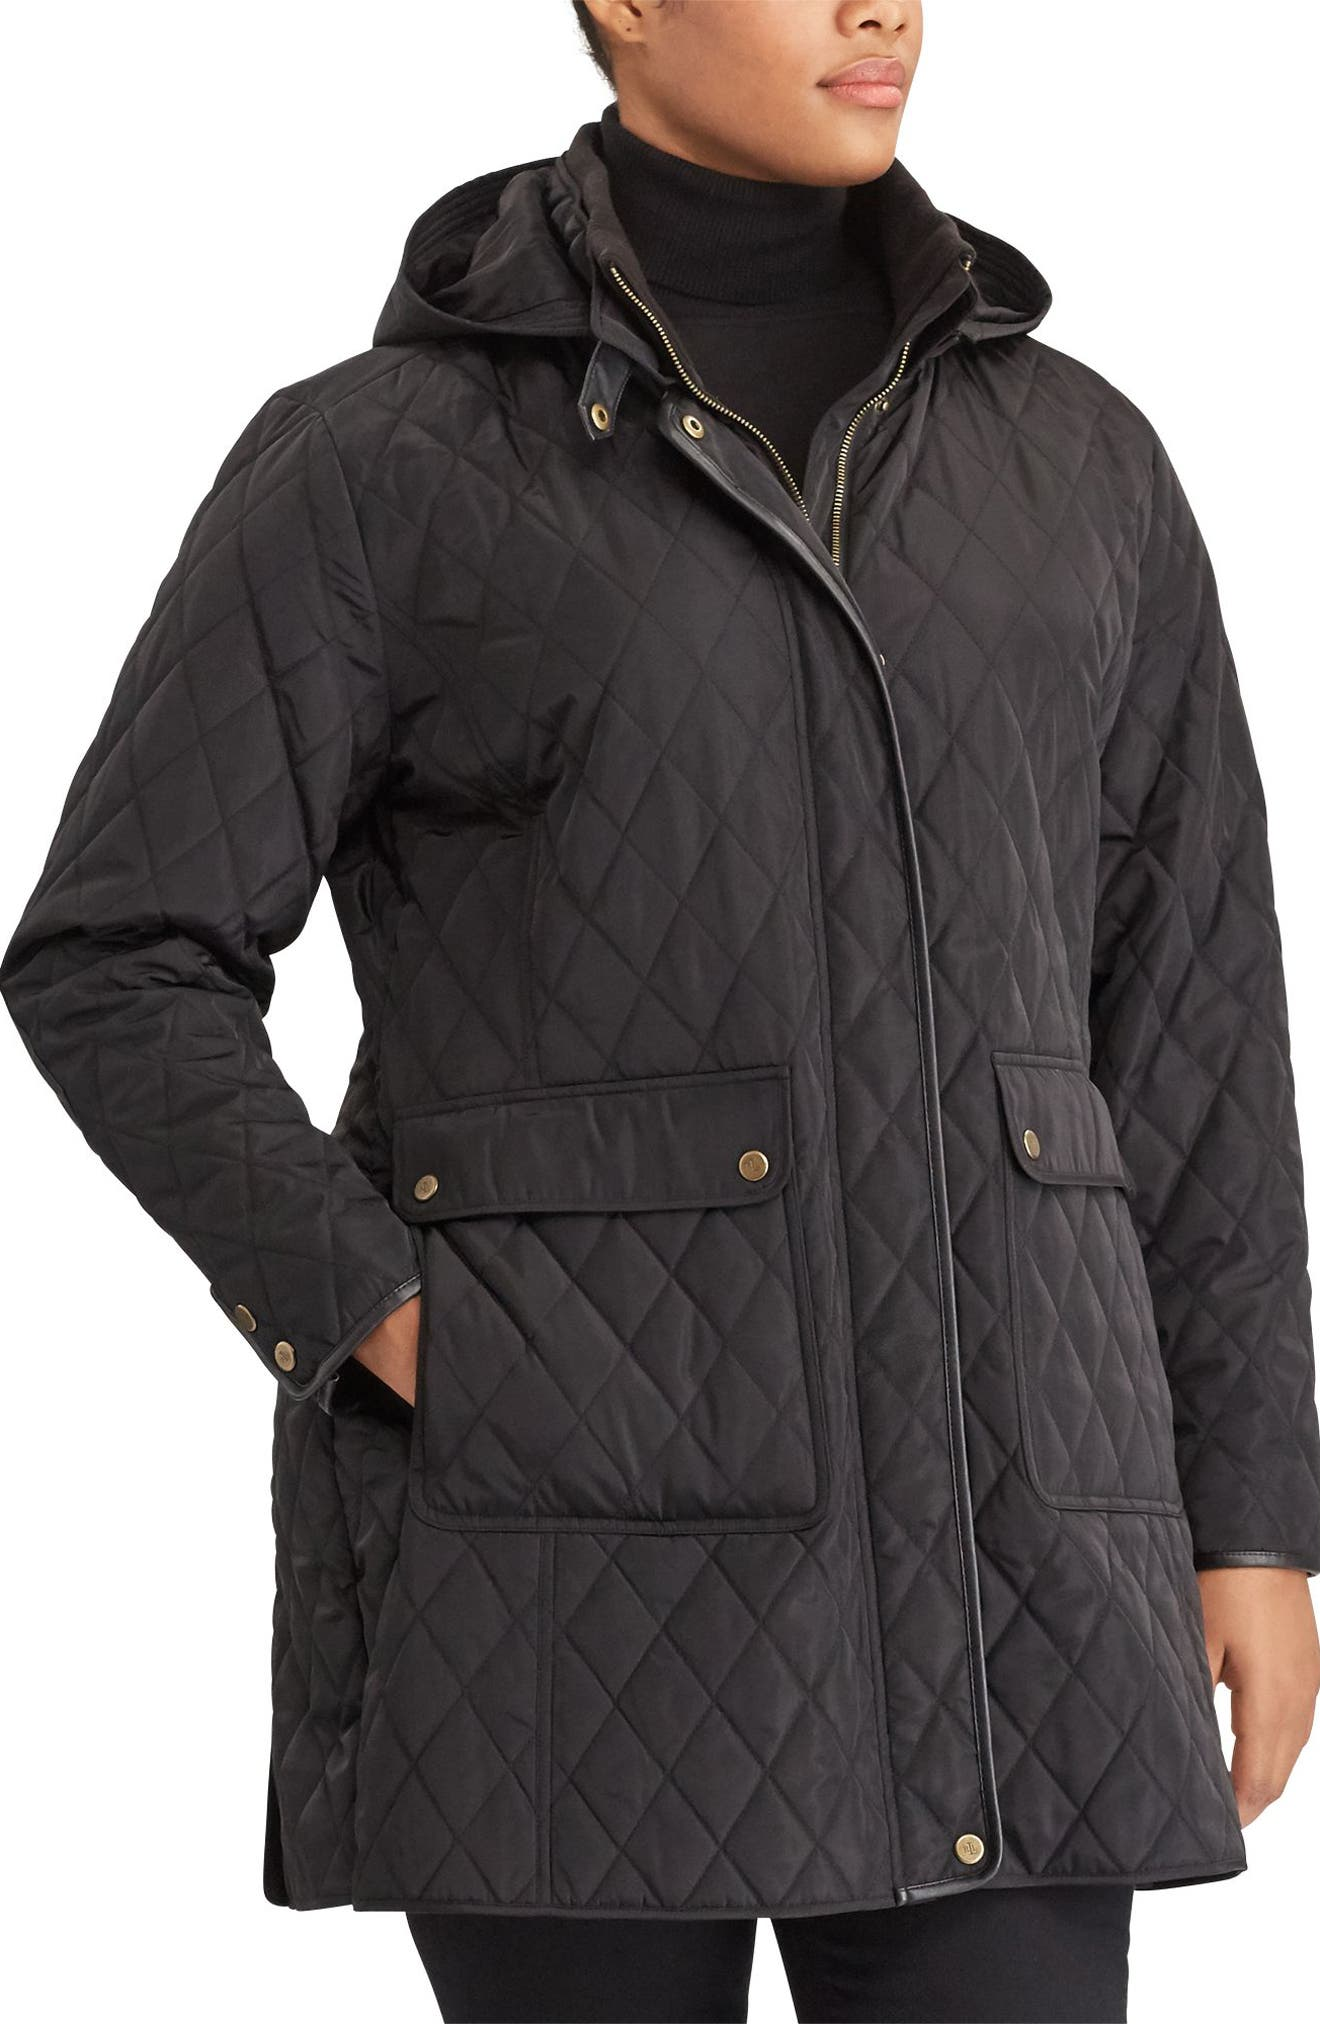 Lauren Ralph Lauren Diamond Quilted Jacket with Faux Leather Trim